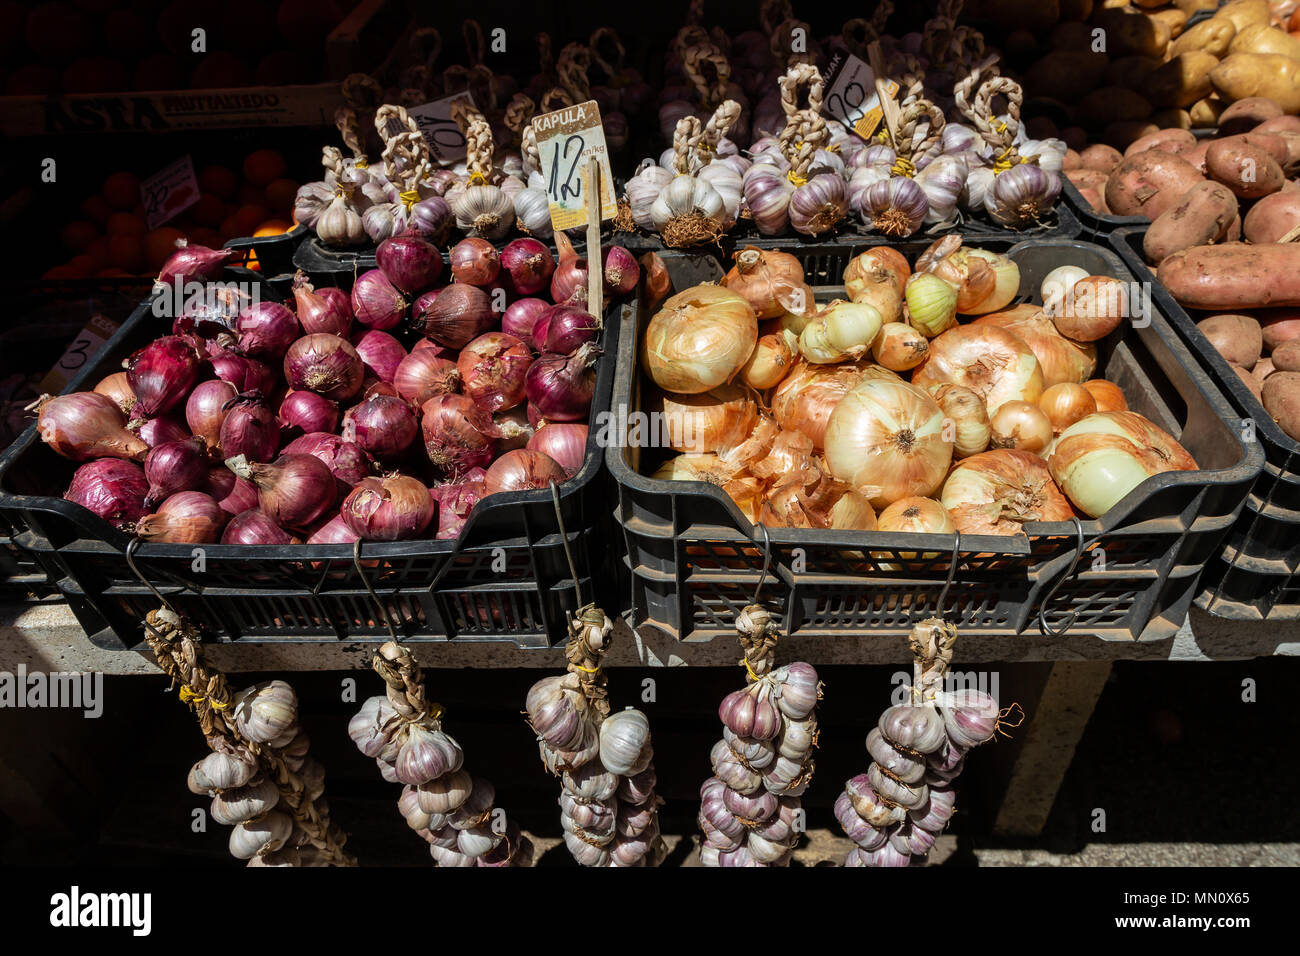 PULA, CROATIA - JUNE 26, 2017.Vegetables at local marketplace - Stock Image